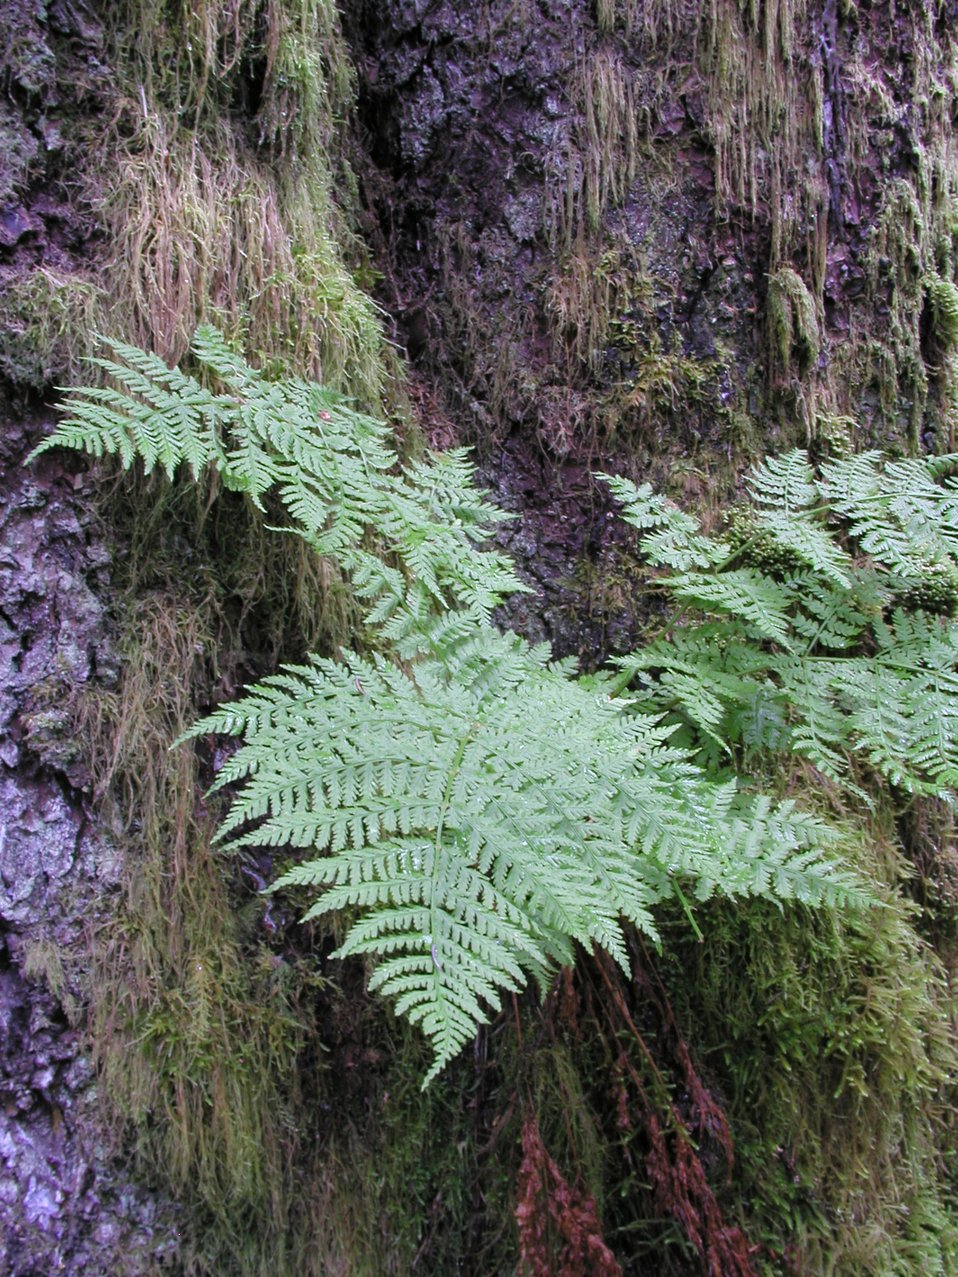 Ferns, moss, and bark in the forest on Spruce Island